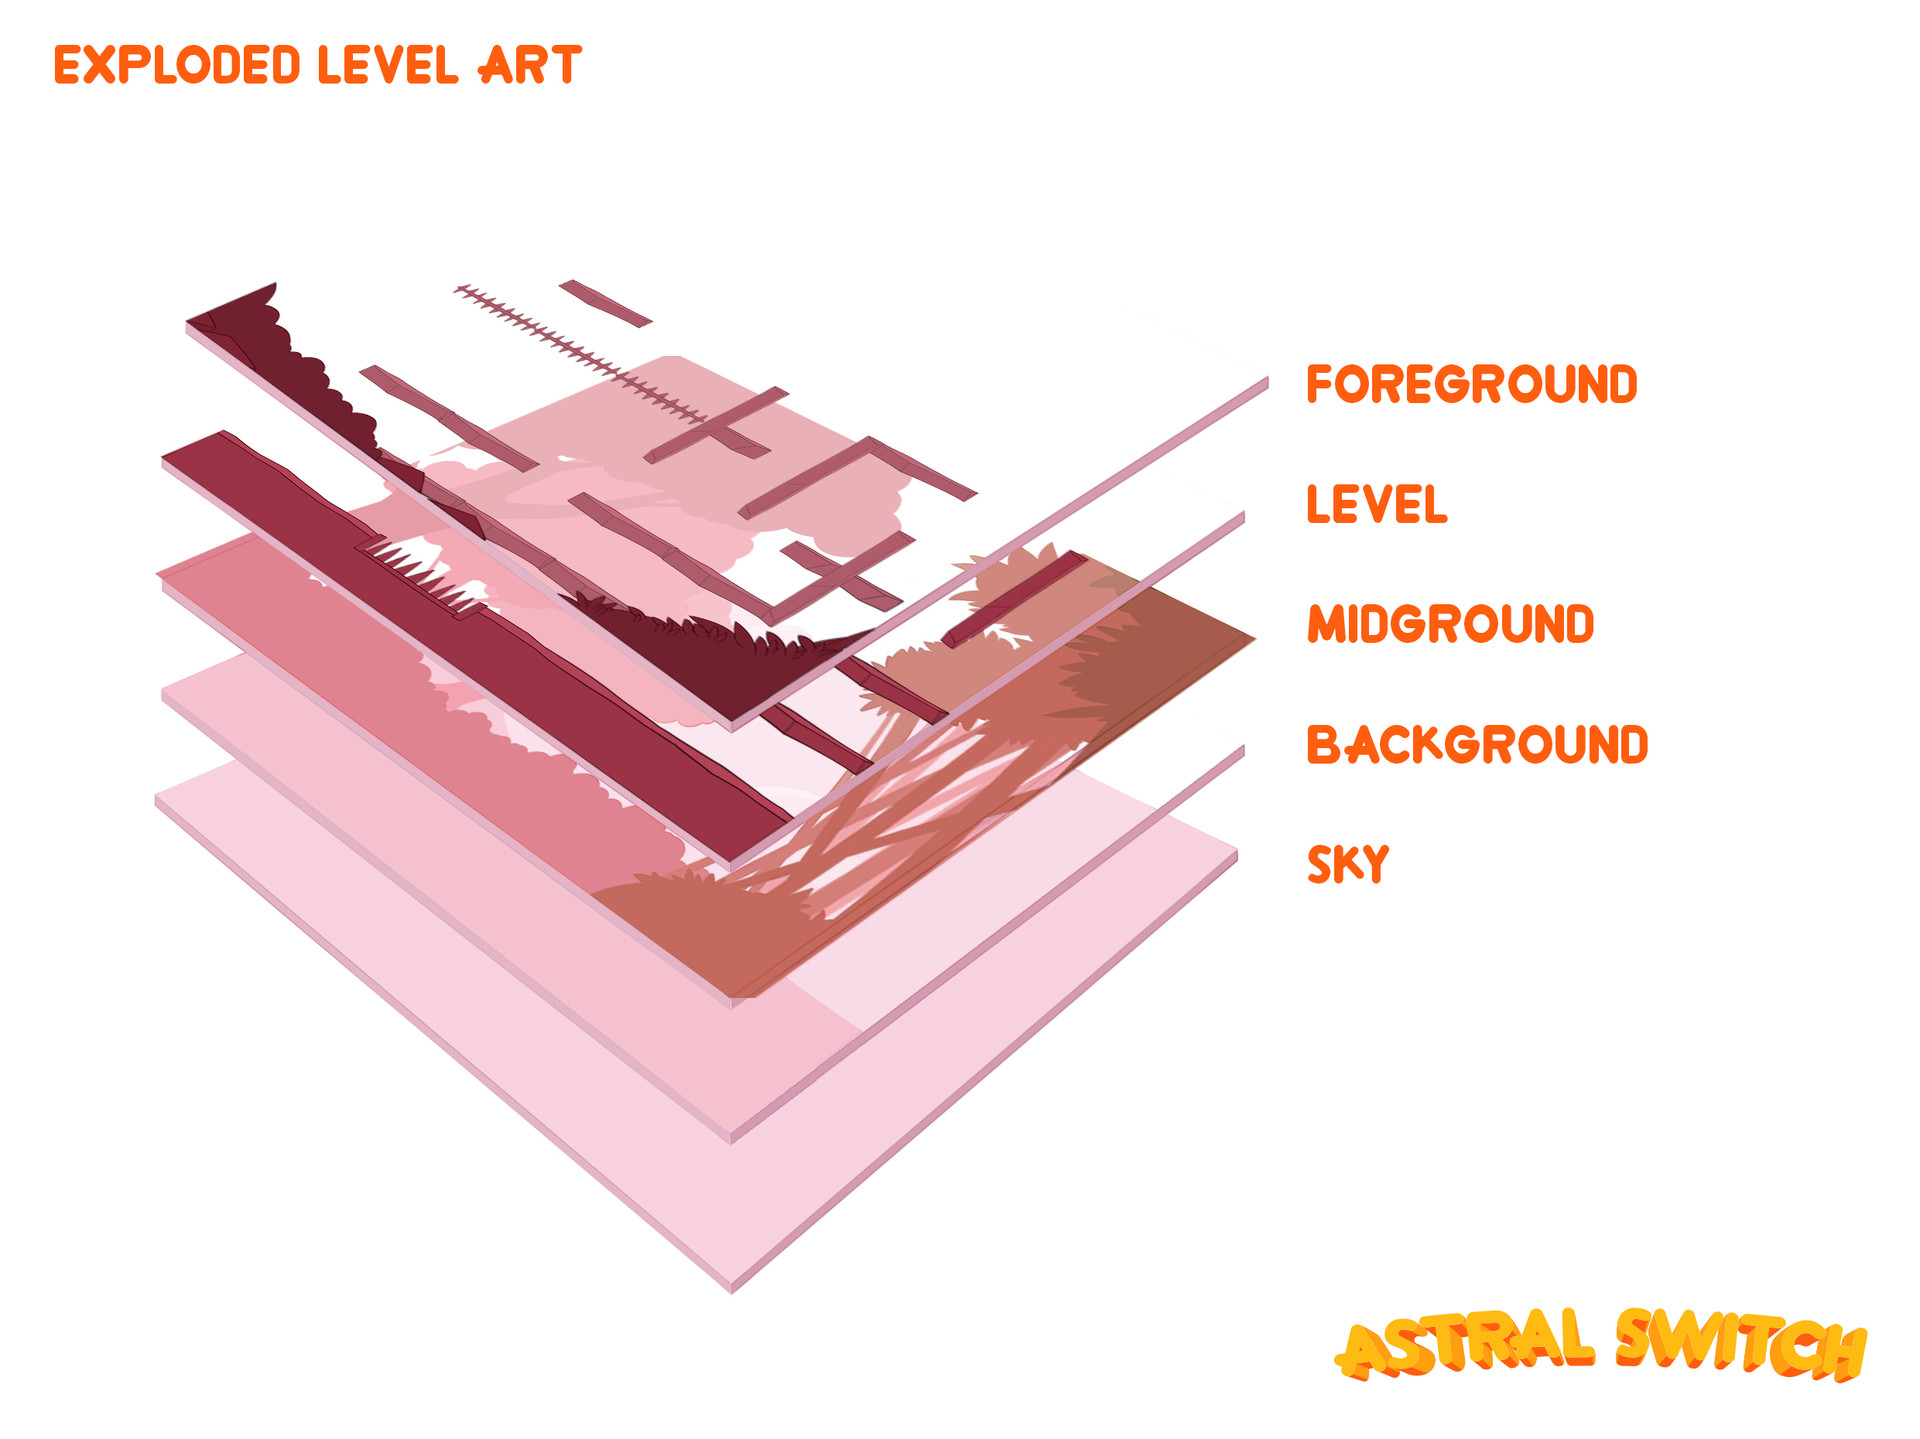 Layered level art allowing for parralax, shown below